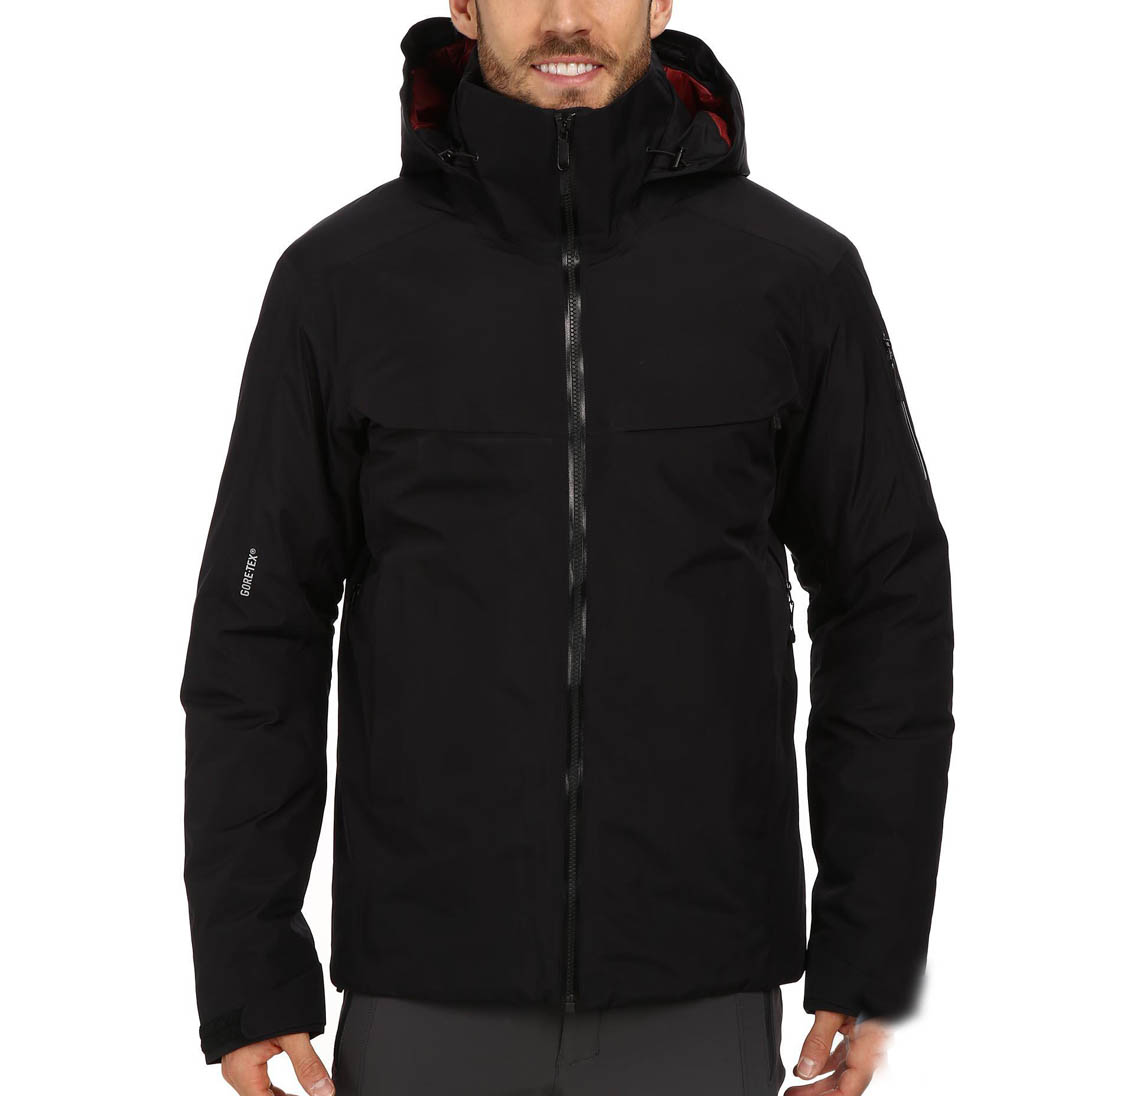 JCHC increased system GTX jacket down jacket 12650 rain and snow ski suit goose down filling JCHC increased system GTX jacket down jacket 12650 rain and snow ski suit goose down filling